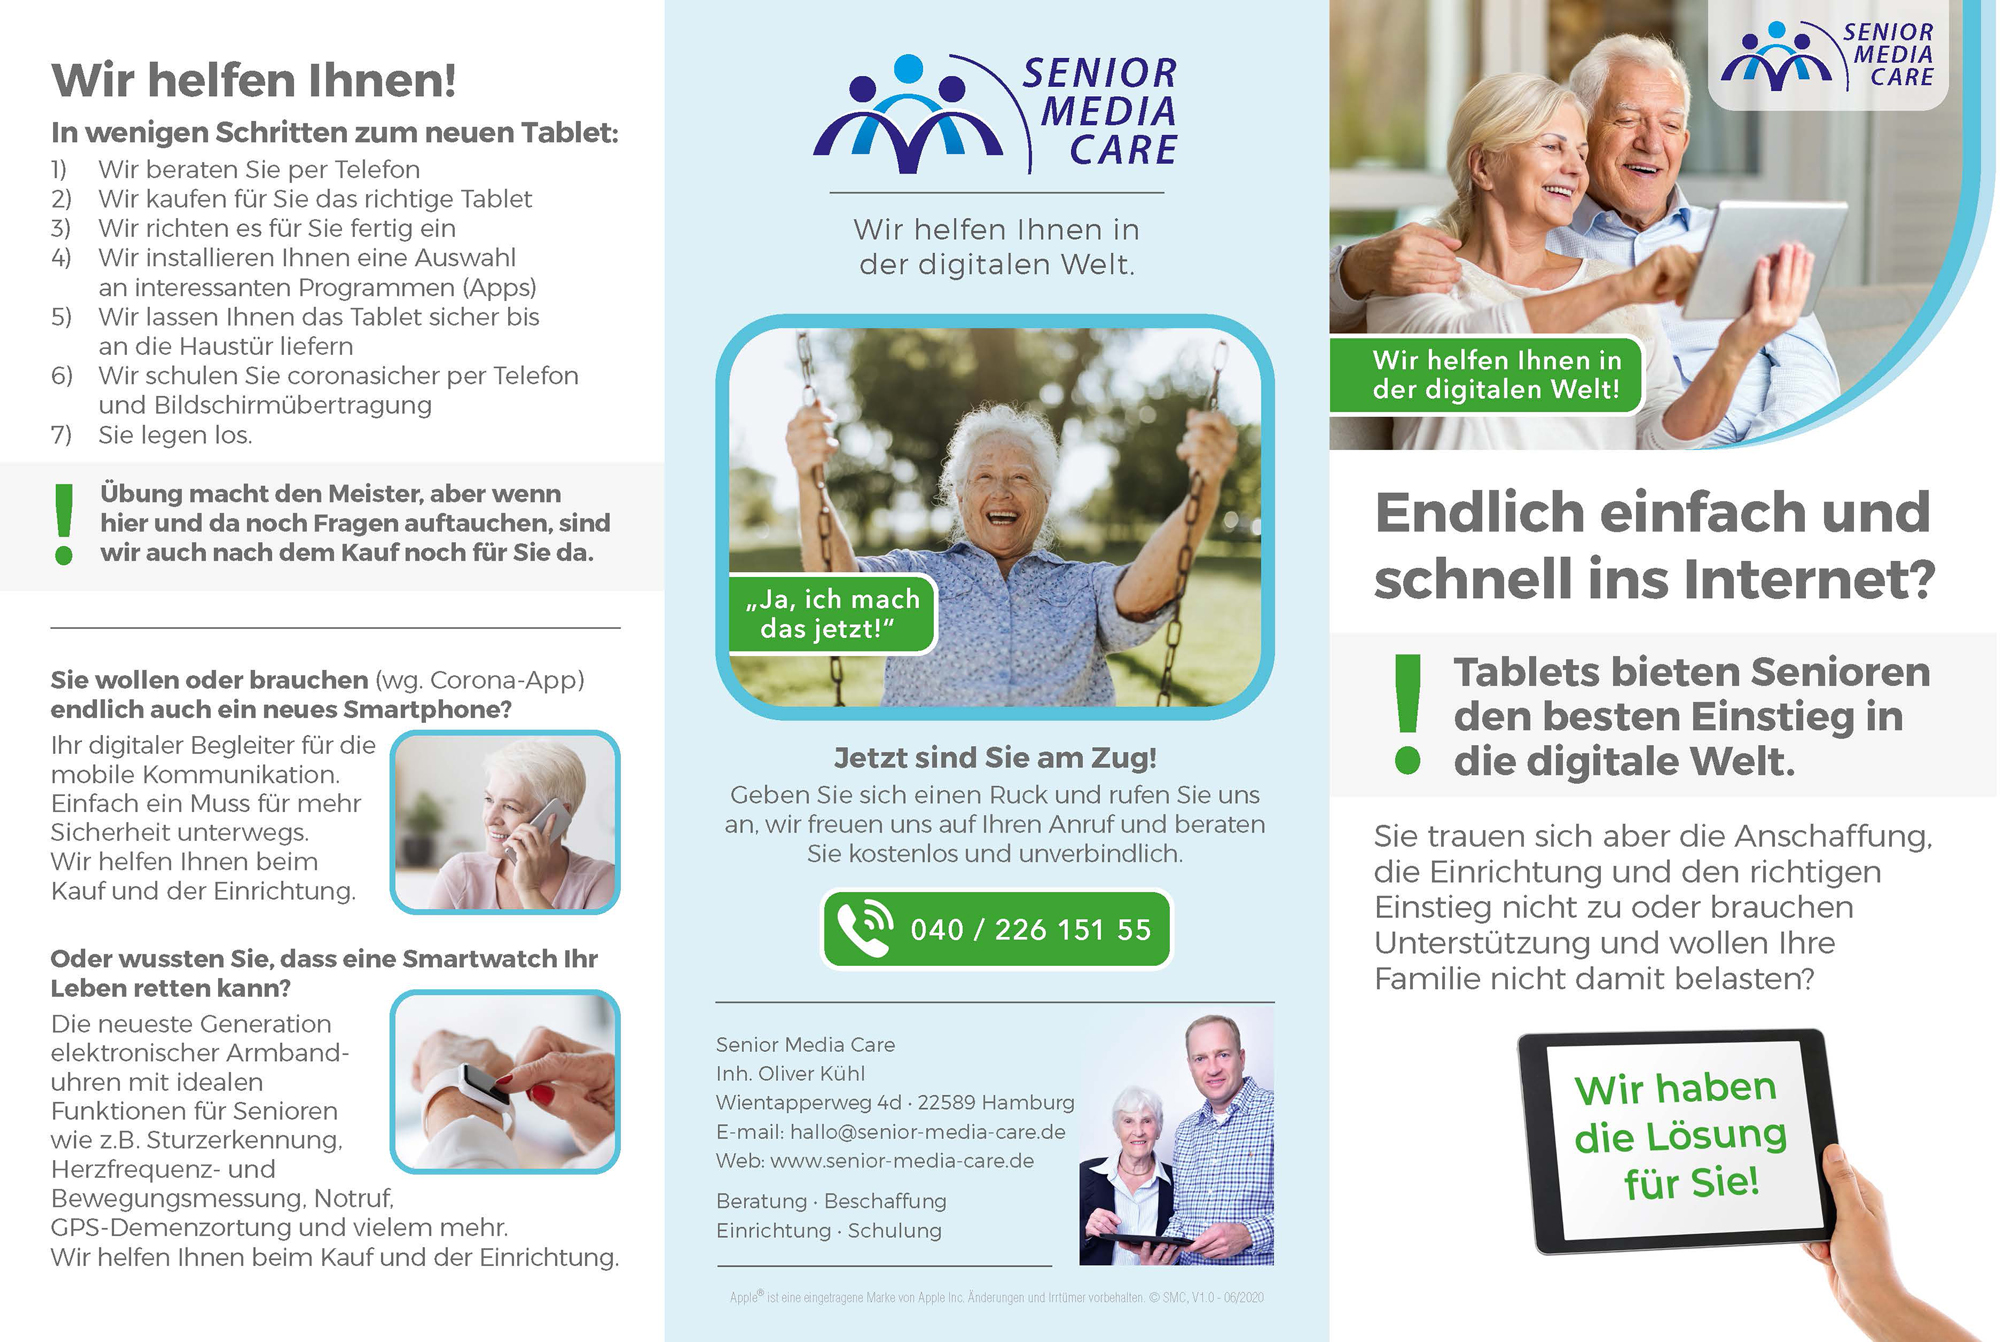 Senior Media Care Infobroschüre - Aussenseiten